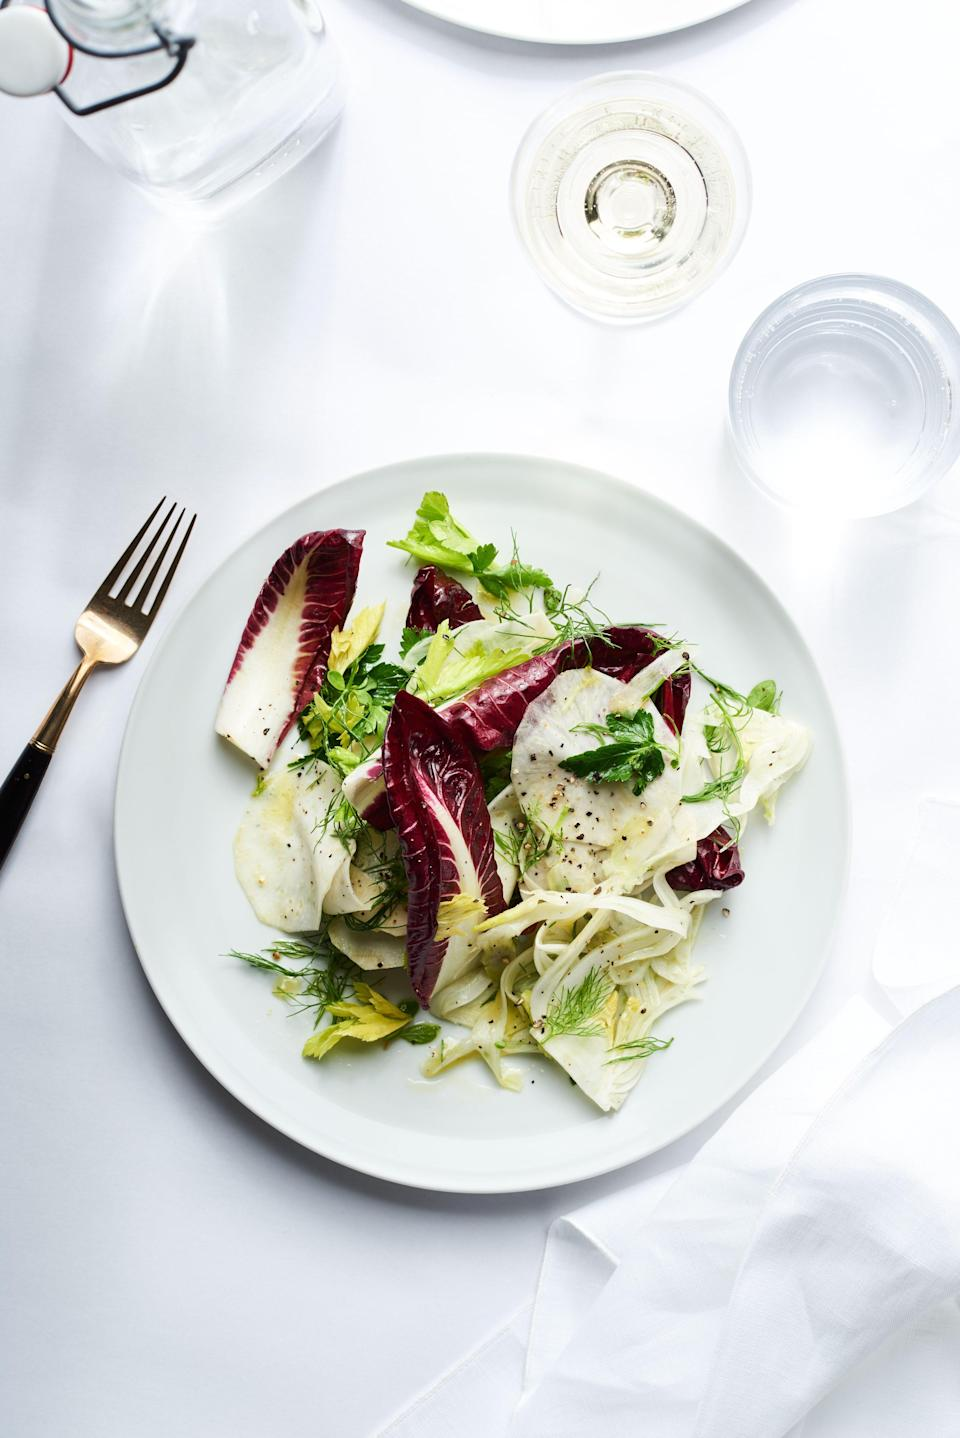 """Simplicity relies on quality. Be choosy when picking your produce, and look for a new-harvest olive oil for this, which will lend a bright, robust flavor. <a href=""""https://www.bonappetit.com/recipe/fennel-and-celery-root-salad?mbid=synd_yahoo_rss"""" rel=""""nofollow noopener"""" target=""""_blank"""" data-ylk=""""slk:See recipe."""" class=""""link rapid-noclick-resp"""">See recipe.</a>"""